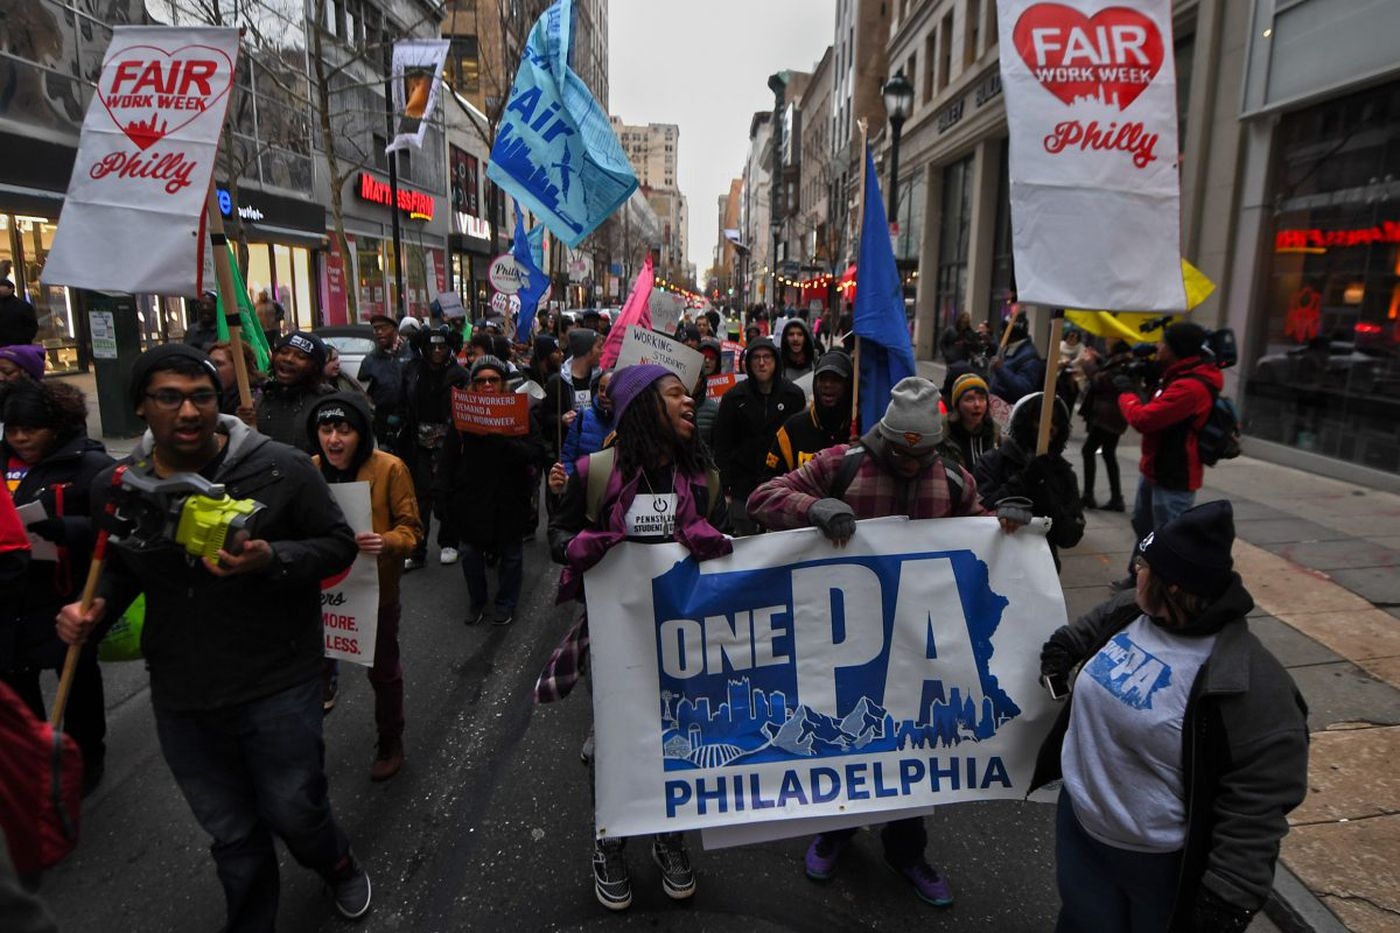 The nationwide workers' fight against unpredictable hours has hit Philadelphia